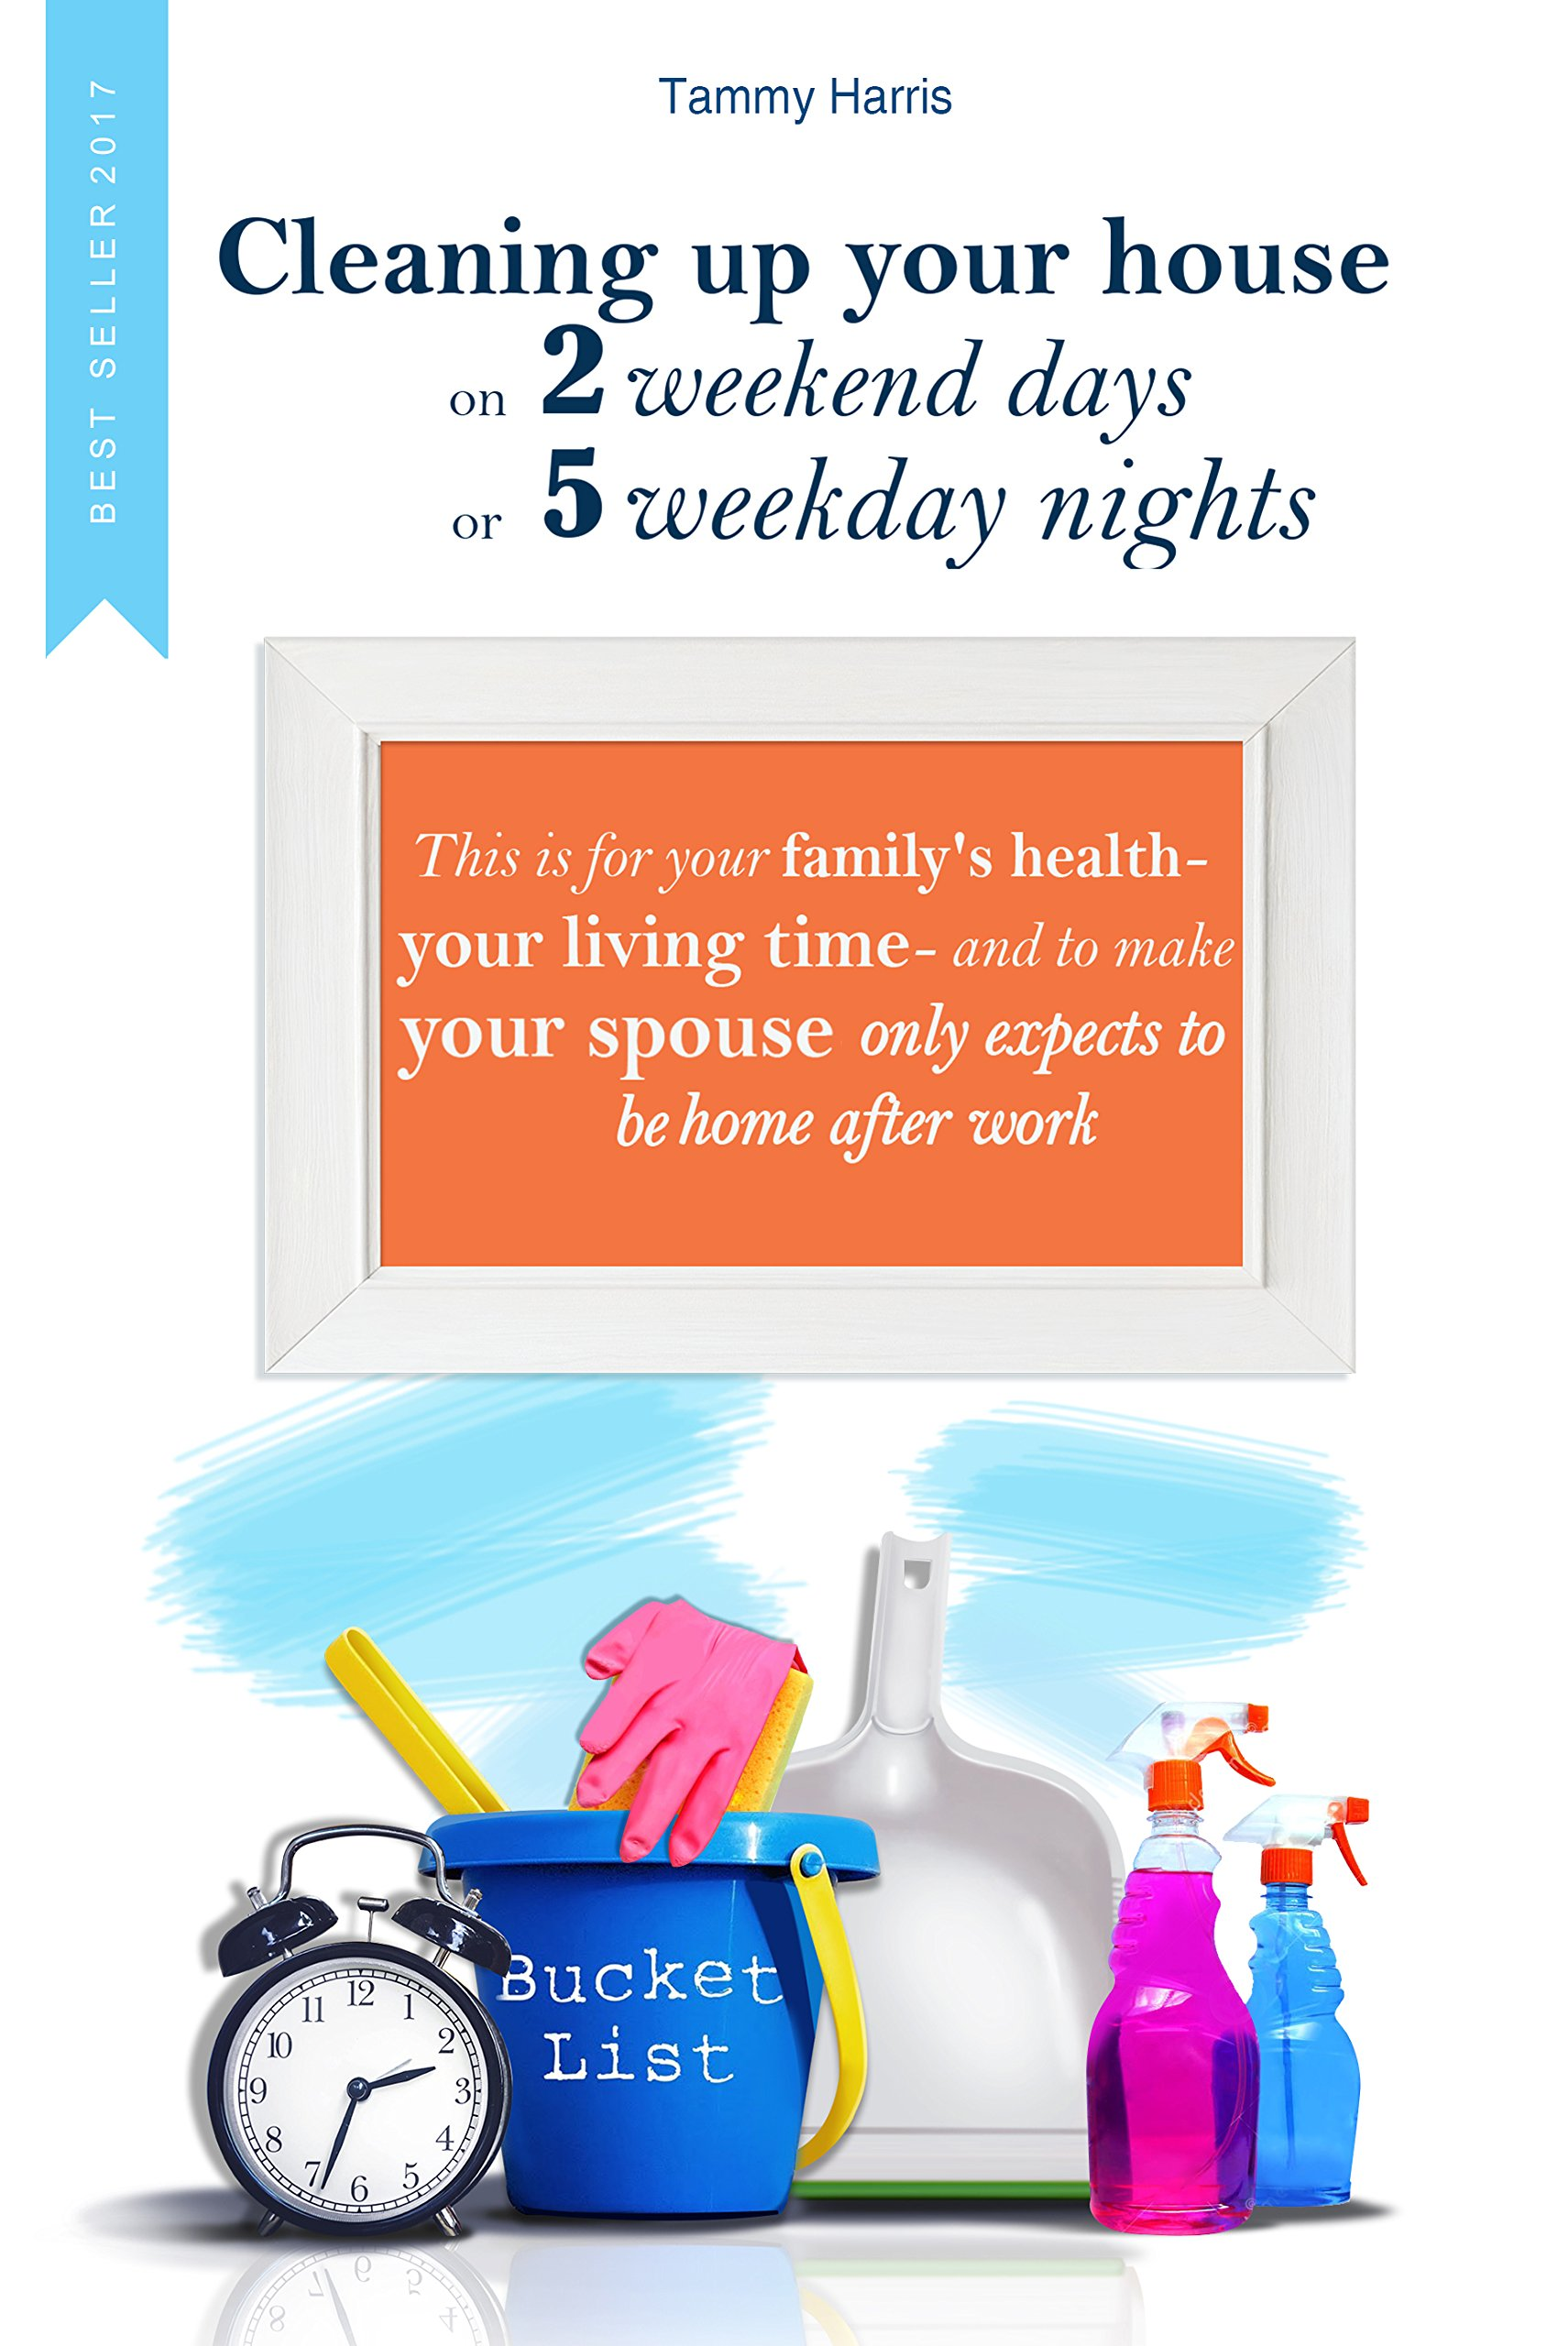 Télécharger Lire en Ligne CLEANING UP YOUR HOUSE ON 2 WEEKEND DAYS OR 5 WEEKDAY NIGHTS: This is for your family's health    your living time   and to make your spouse only expects to be home after work. (English Edition) 